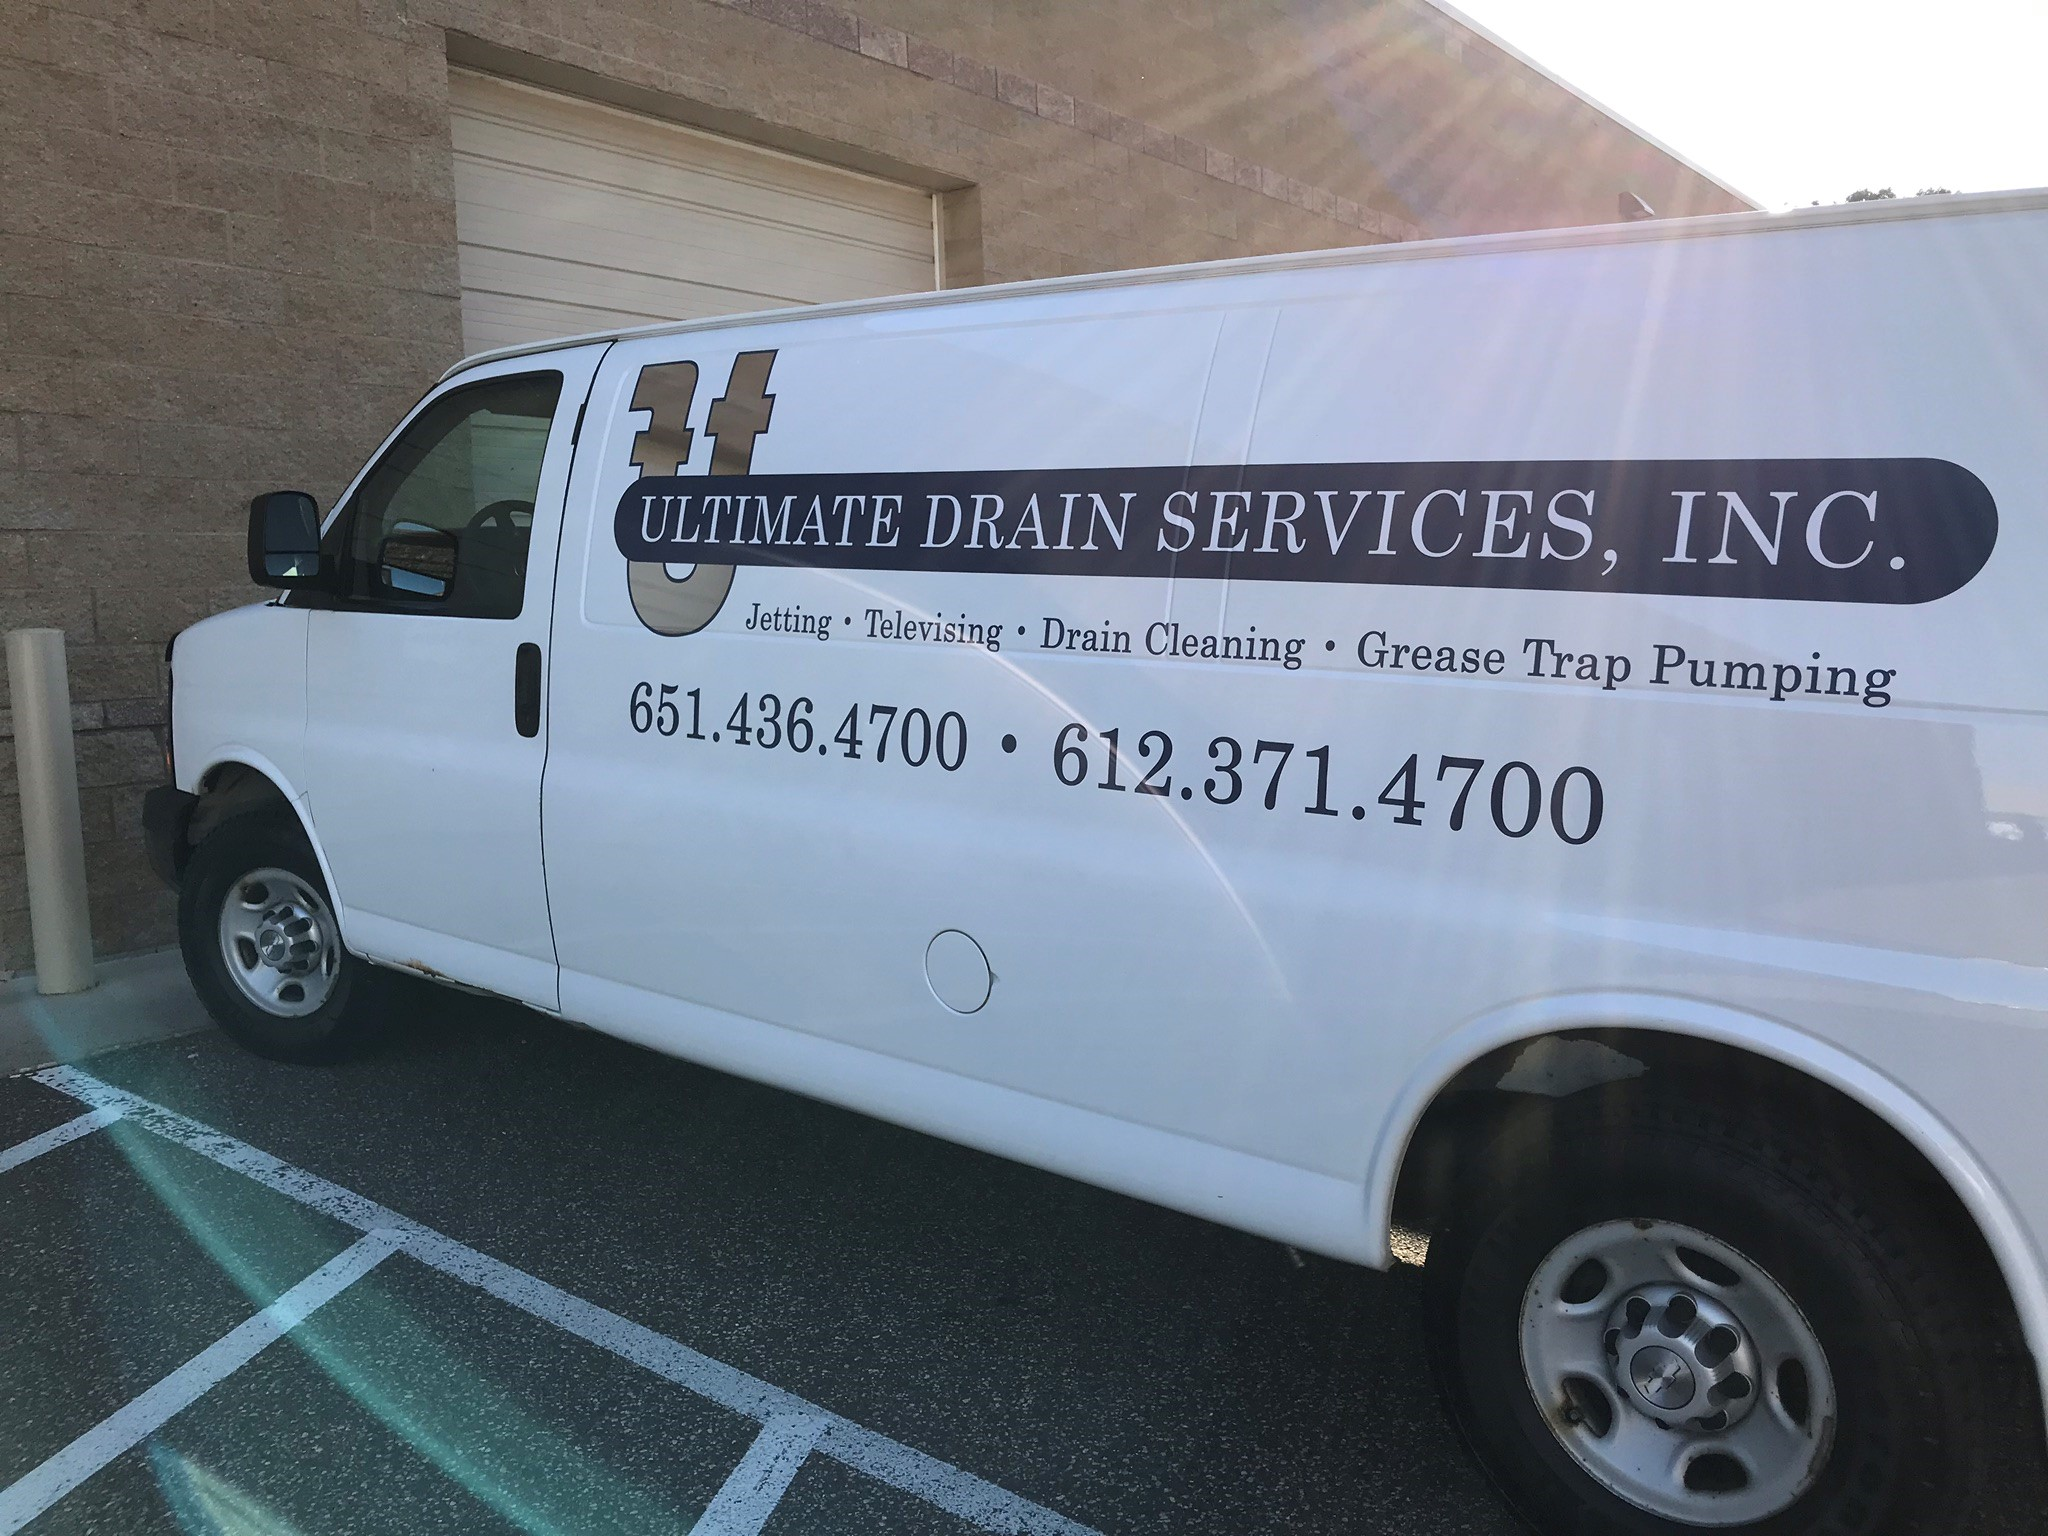 Vehicle Decals & Lettering | Partial Vehicle Wraps | Service & Trade Organizations | Woodbury, MN